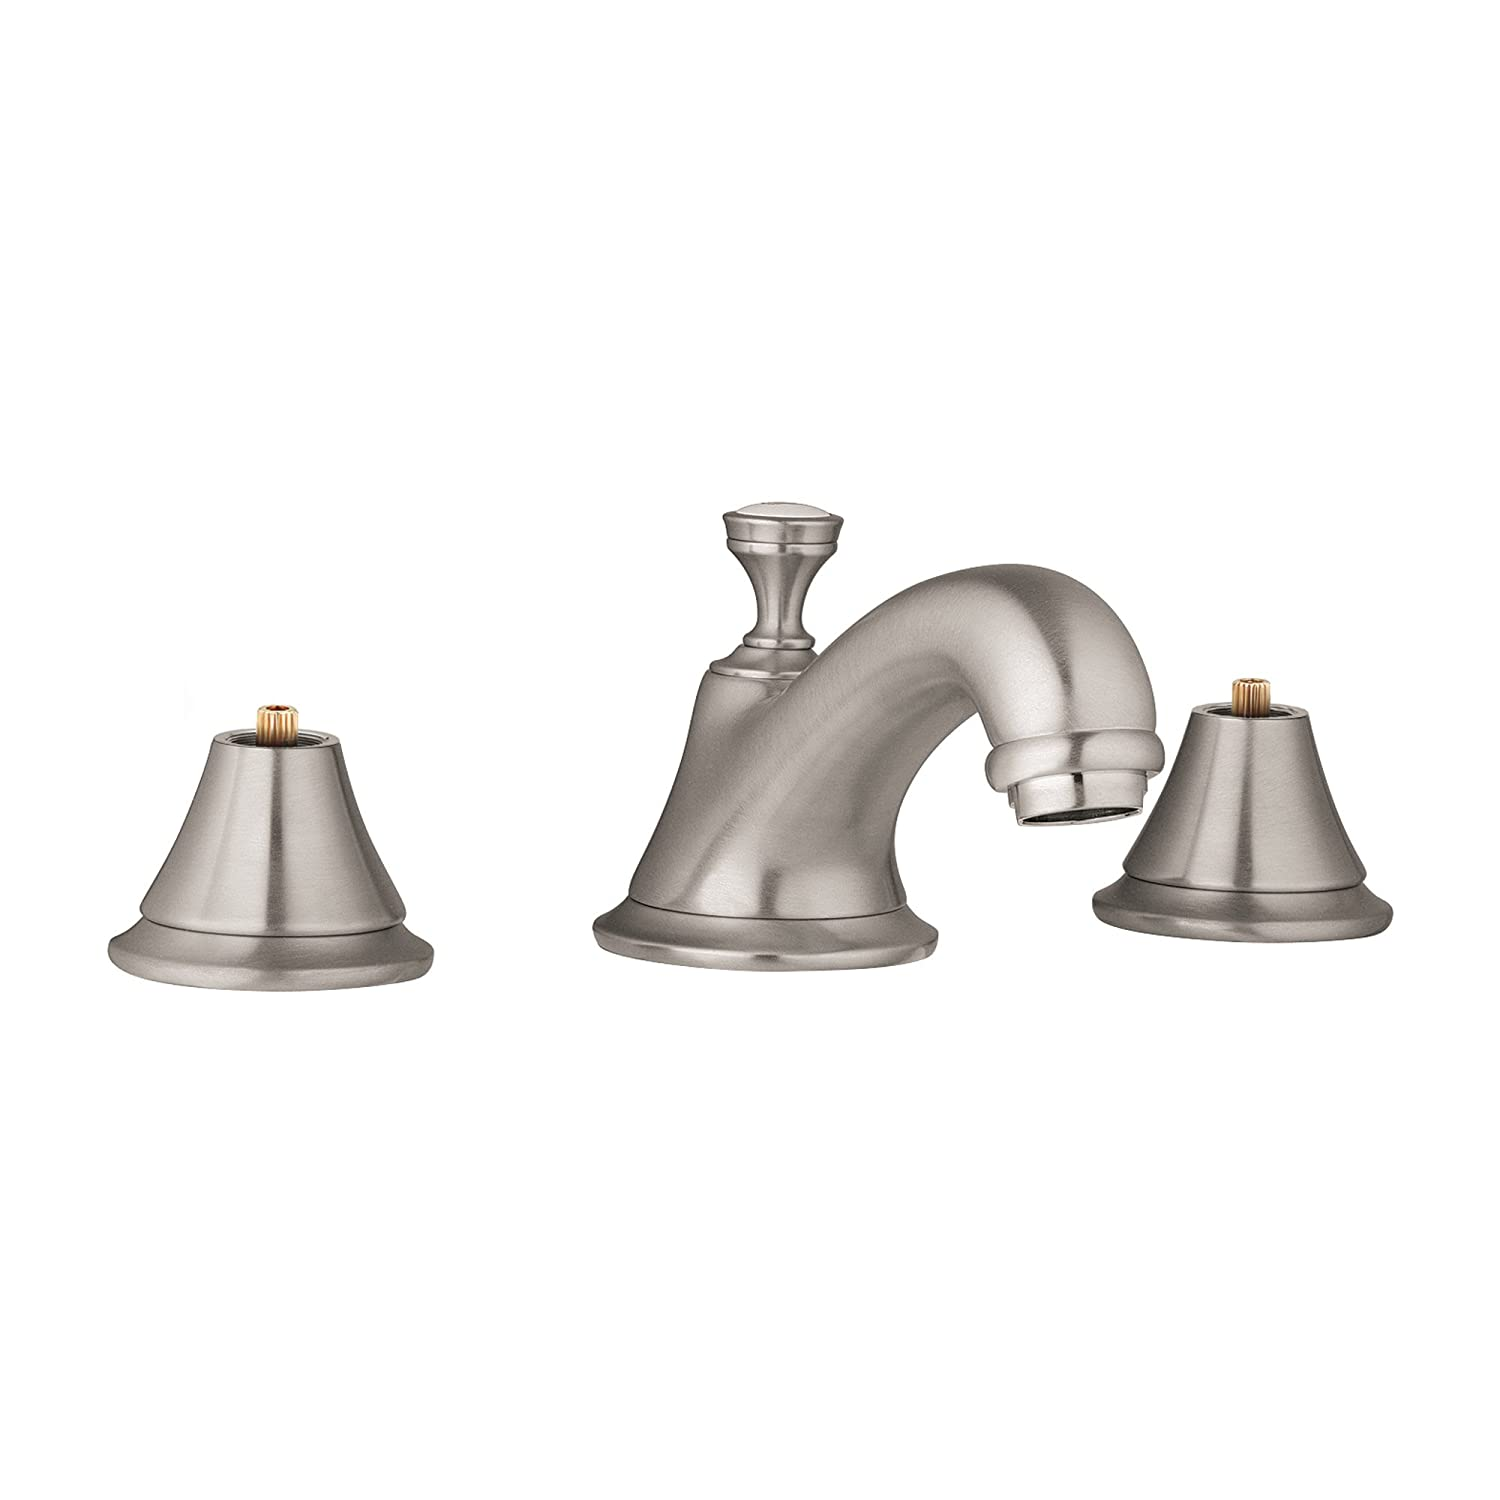 Grohe Seabury Widespread Bathroom Faucet, Brushed Nickel